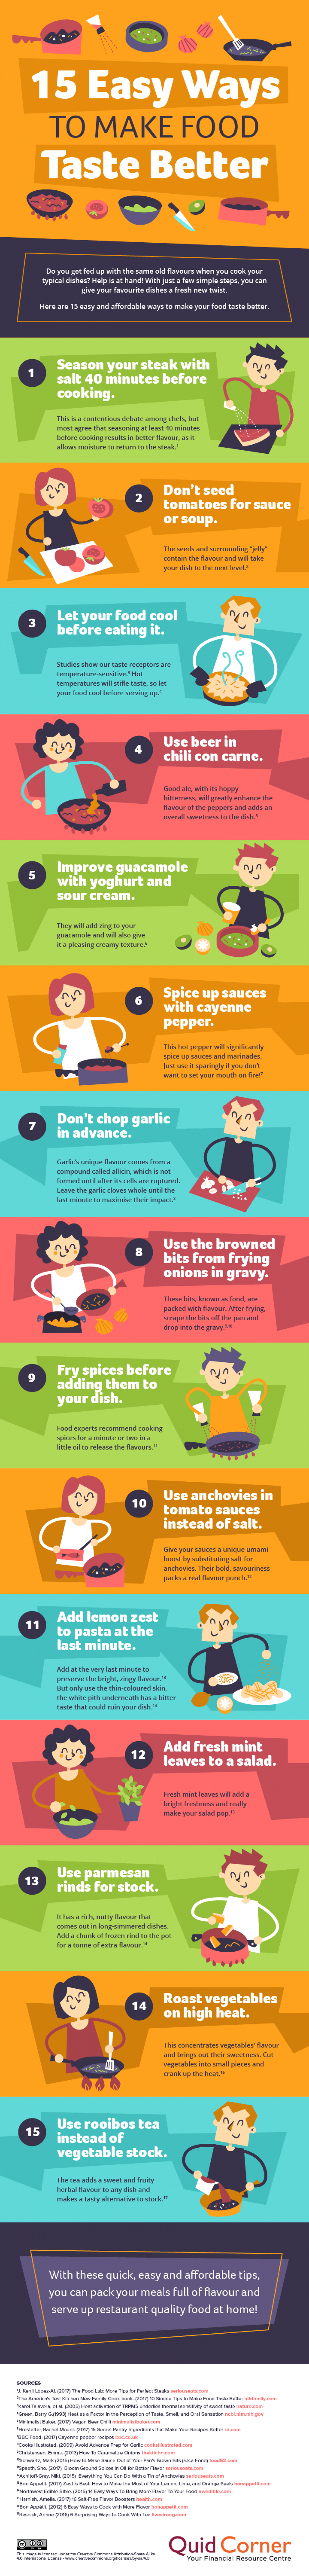 15 Easy Ways to Make Food Taste Better Infographic